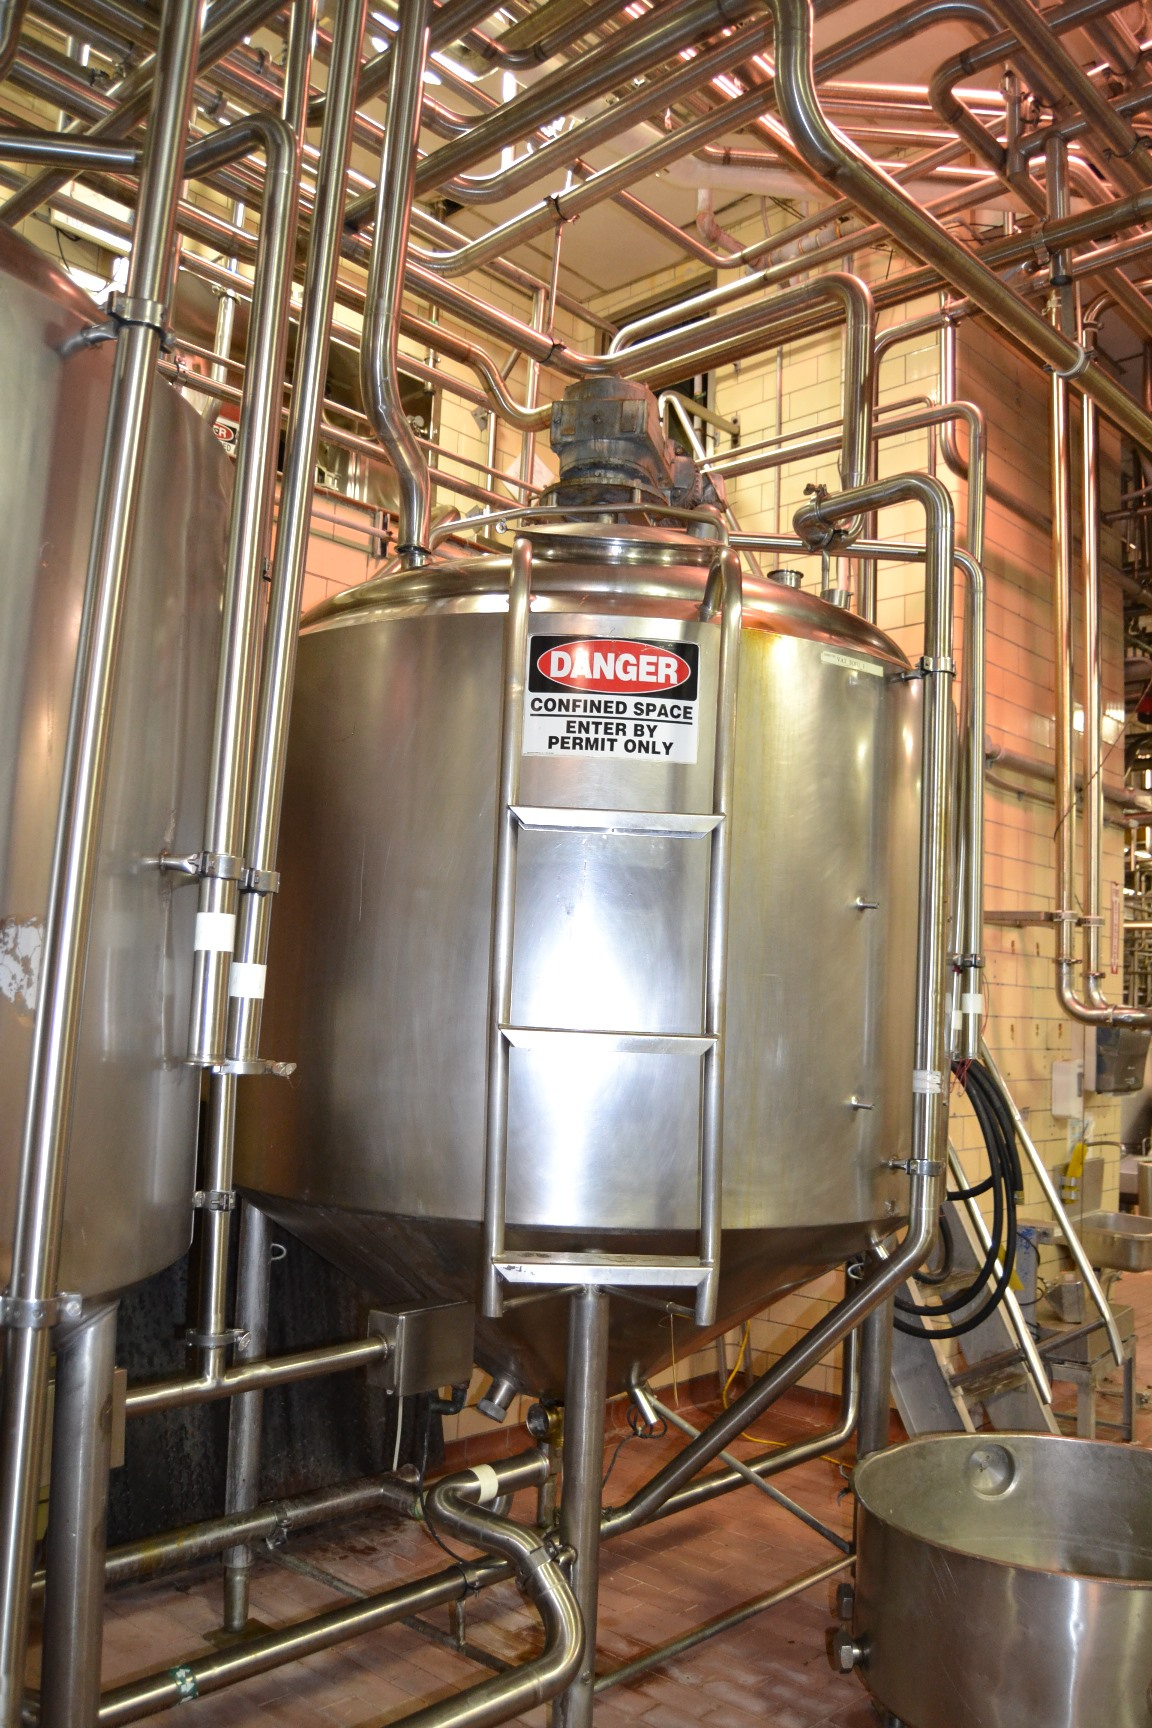 ***SOLD*** used 800 Gallon Crepaco Jacketed Mix tank/processor kettle with Sweep agitation. Jacket rated 50 PSI. Dish top and Cone Bottom. Drive is dual HP: 2 HP 1740 rpm, 230 volt/ 1HP, 870 rpm, 230 volt into Reliance gearbox rated 14/7 rpm output. Has baffle and spray ball. Approx. 7' OD x 10' OAH without mixer drive.  3